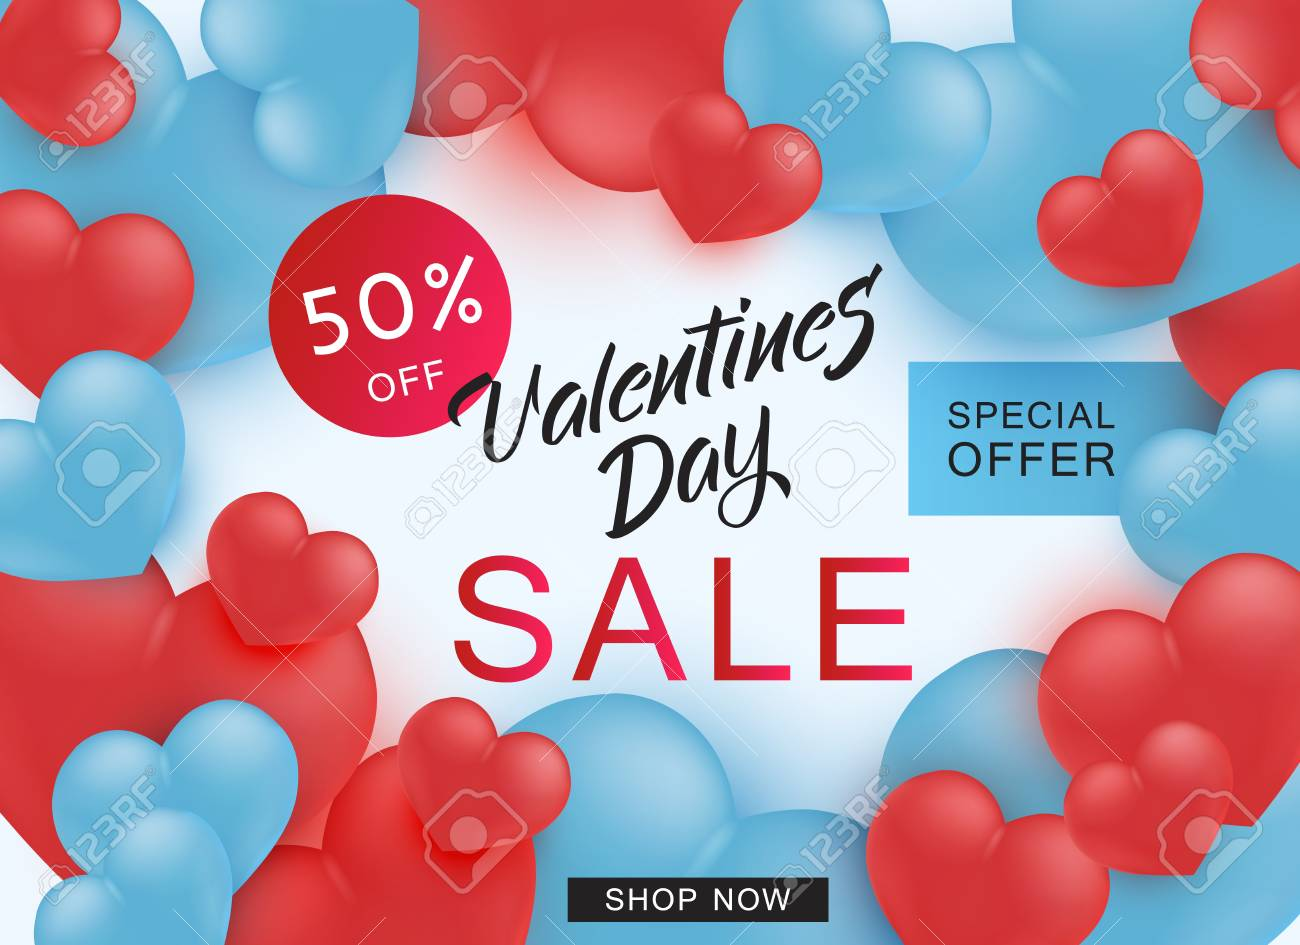 Valentines Day sale and special offer banner with sign surrounded by realistic 3d hearts on white background - vector illustration of 14 February holiday discounts promotion. - 125944123